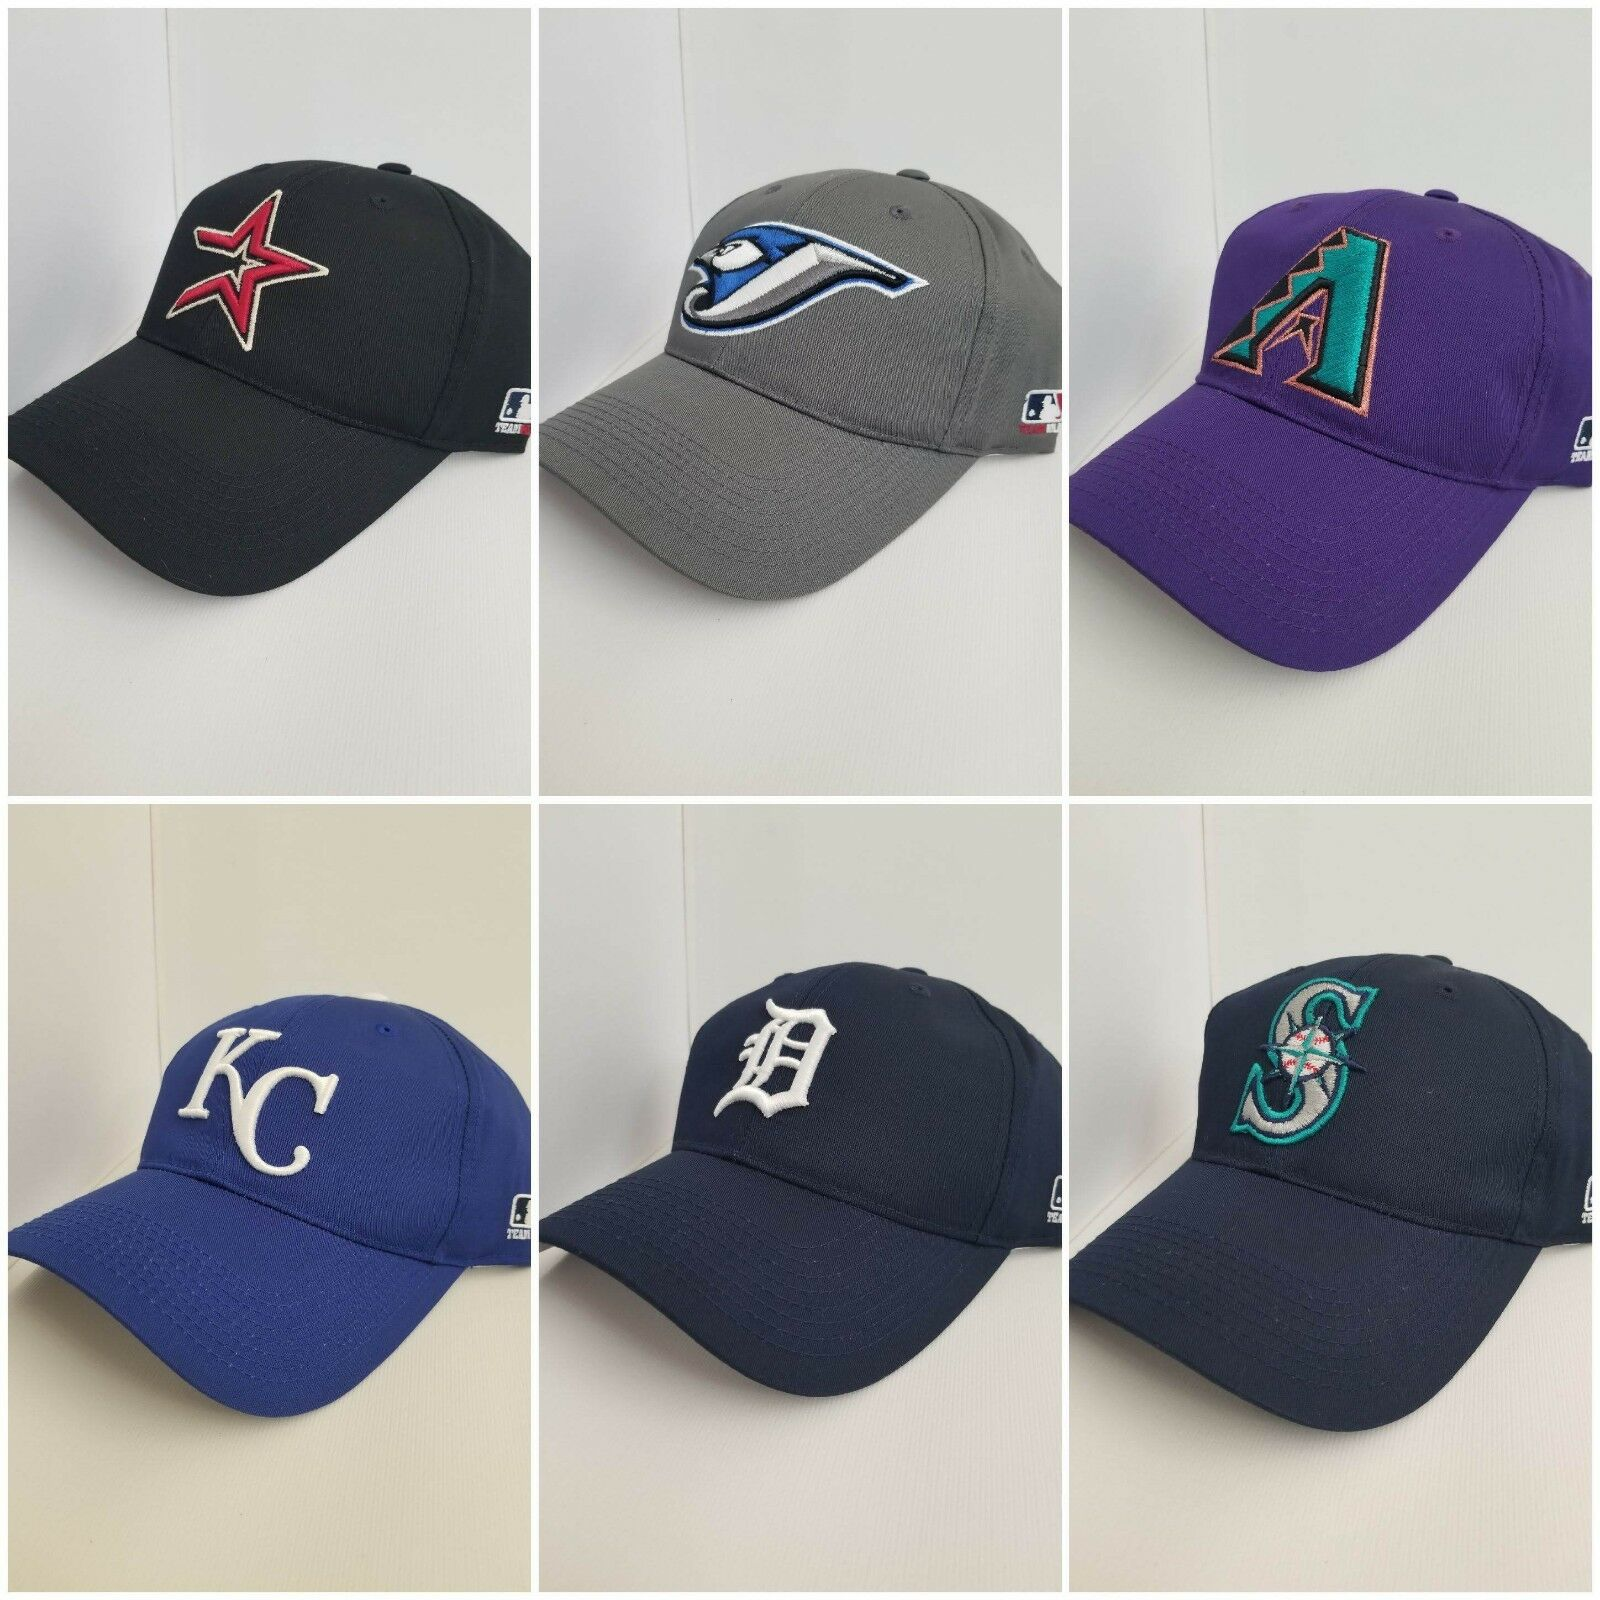 MLB Replica Adult Baseball Cap Hat Licensed Astros, Brewers,